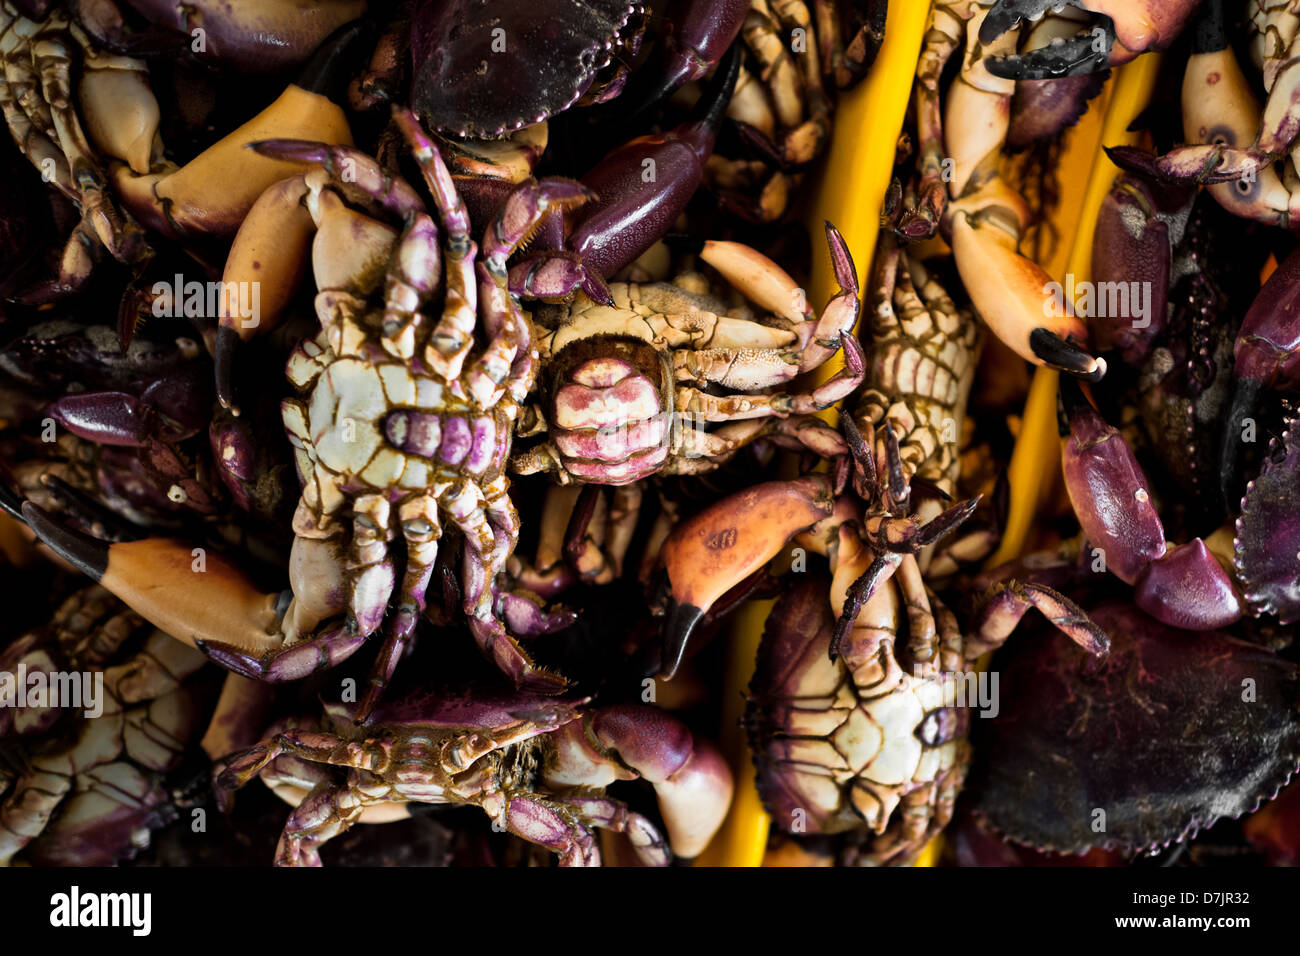 Crabs for sale seen at Chorrillos seafood and fish market in Lima, Peru. - Stock Image